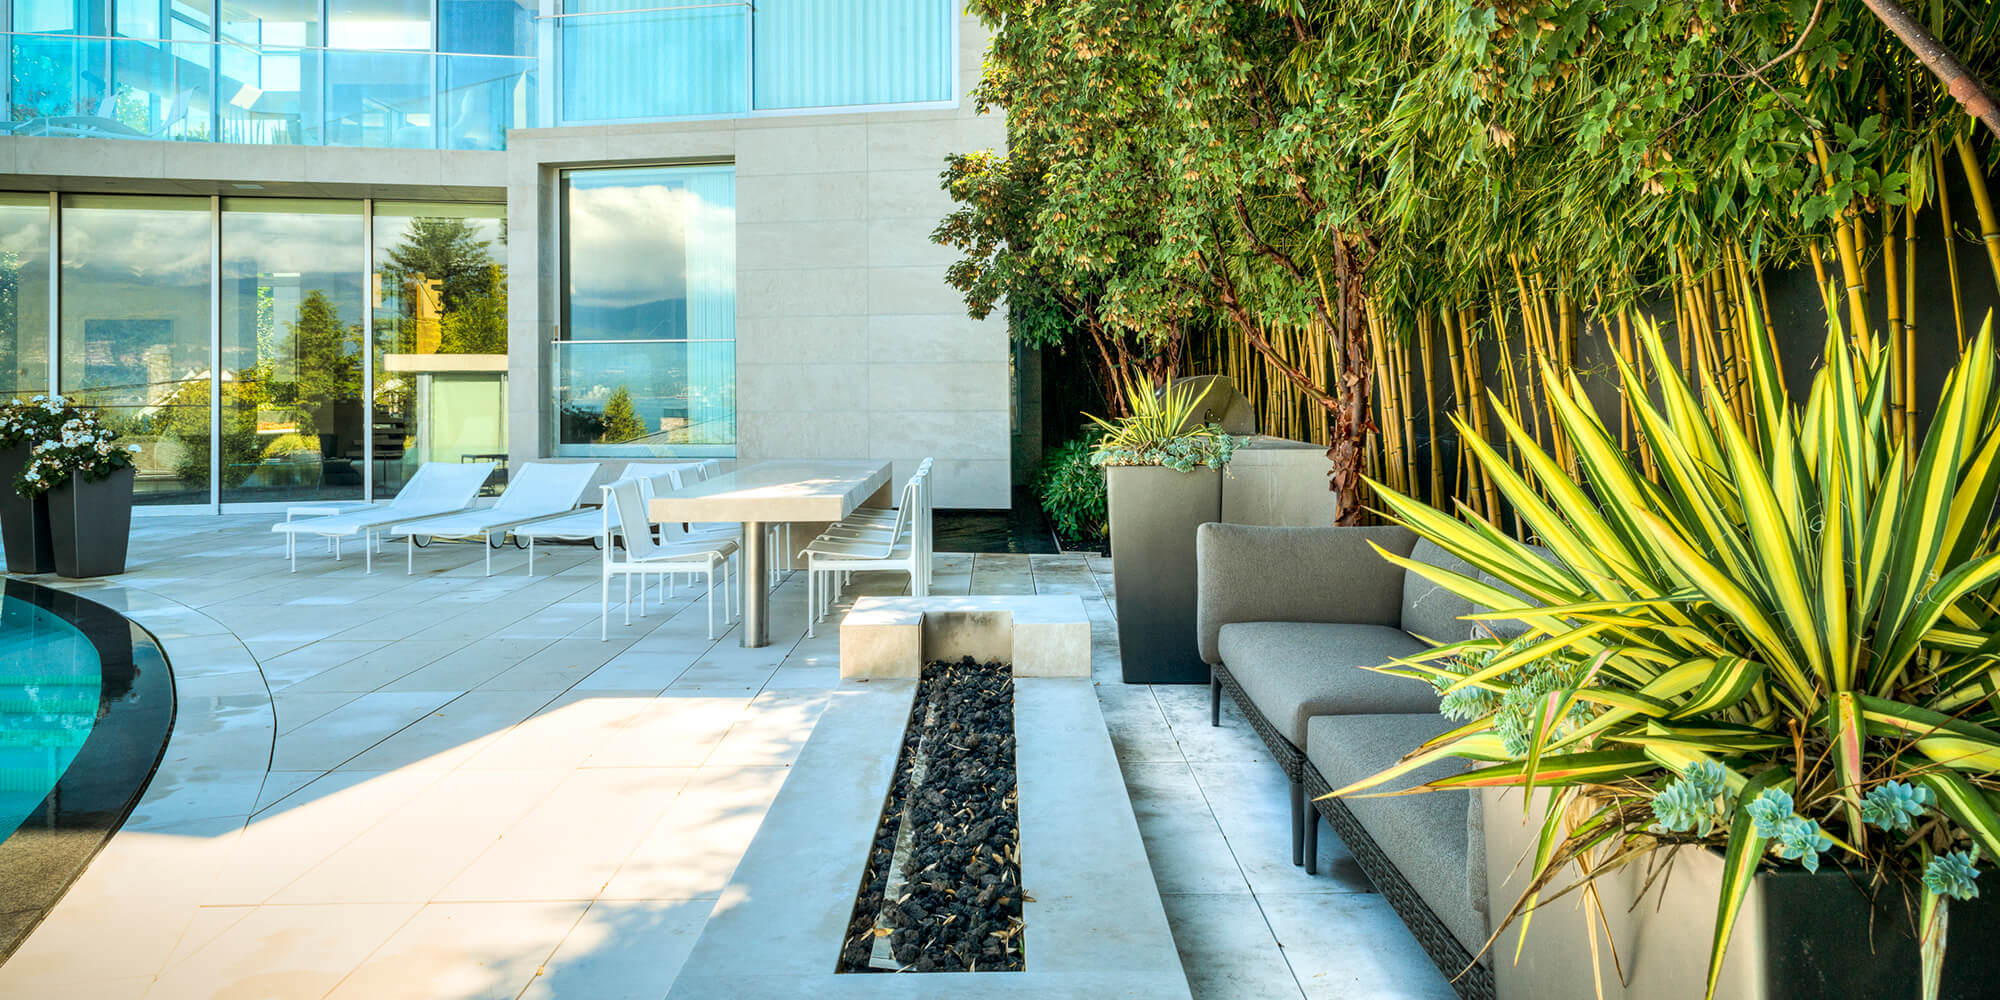 Specializing in creating lush scapes and outdoor living areas of all scales.